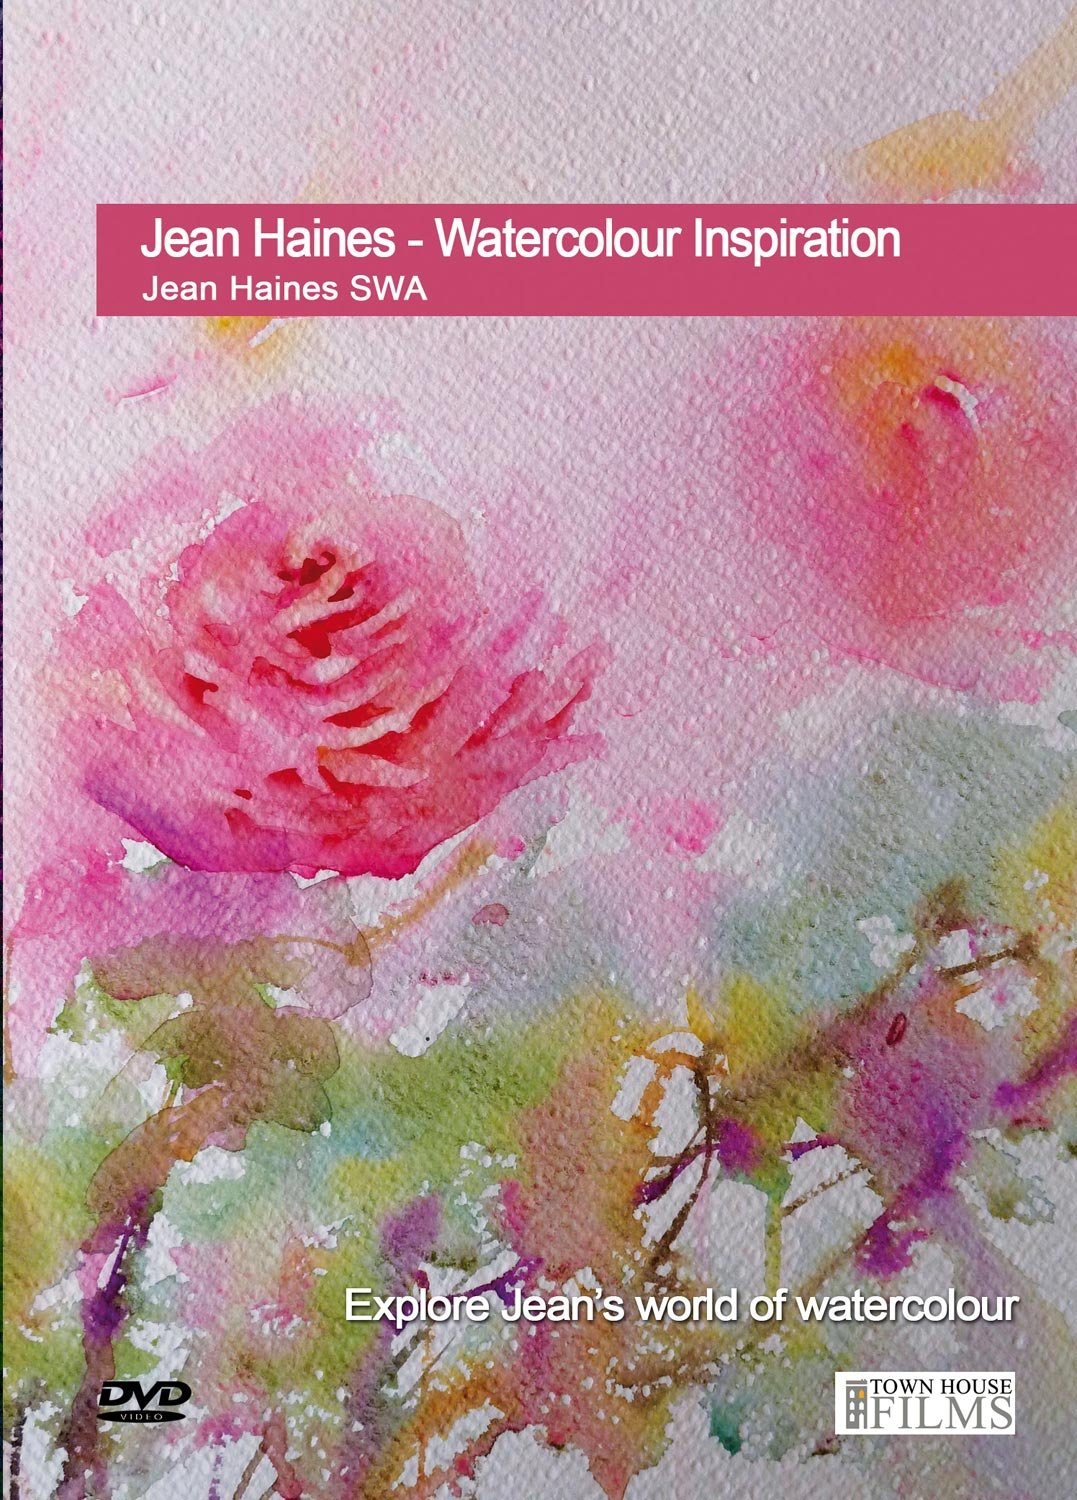 Amazon.com: Jean Haines - Watercolor Inspiration DVD with Jean ...